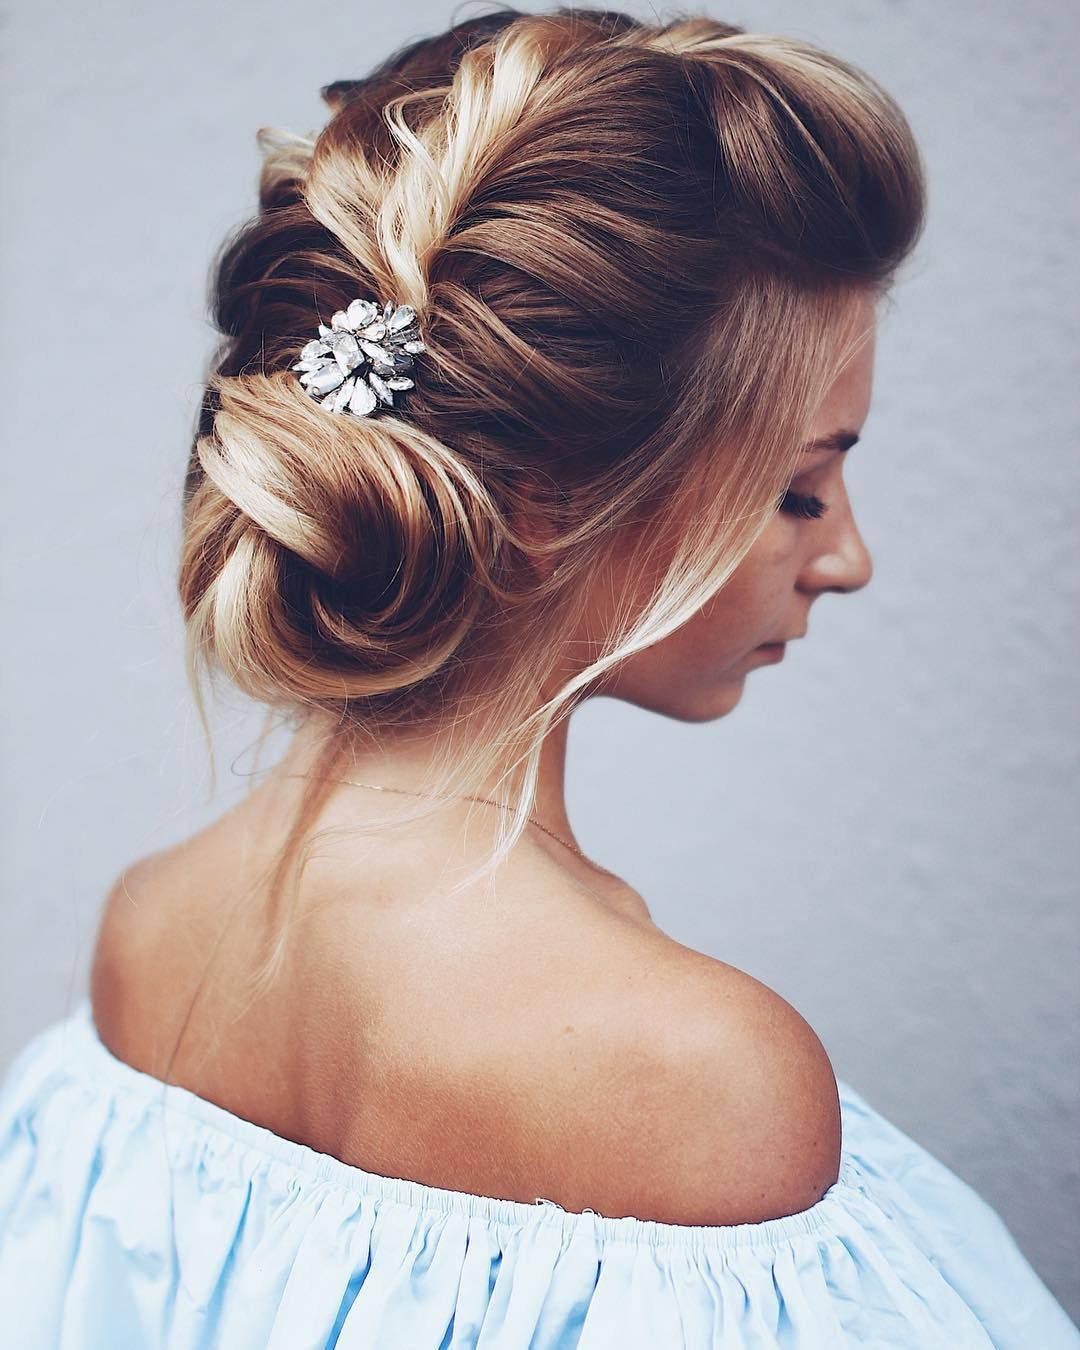 Twisted Updos Wedding hairstyle | fabmood.com #weddinghair #updobraid #updos bridal hair , hairstyle ideas #hairstyles #weddinghairs #weddingupdos